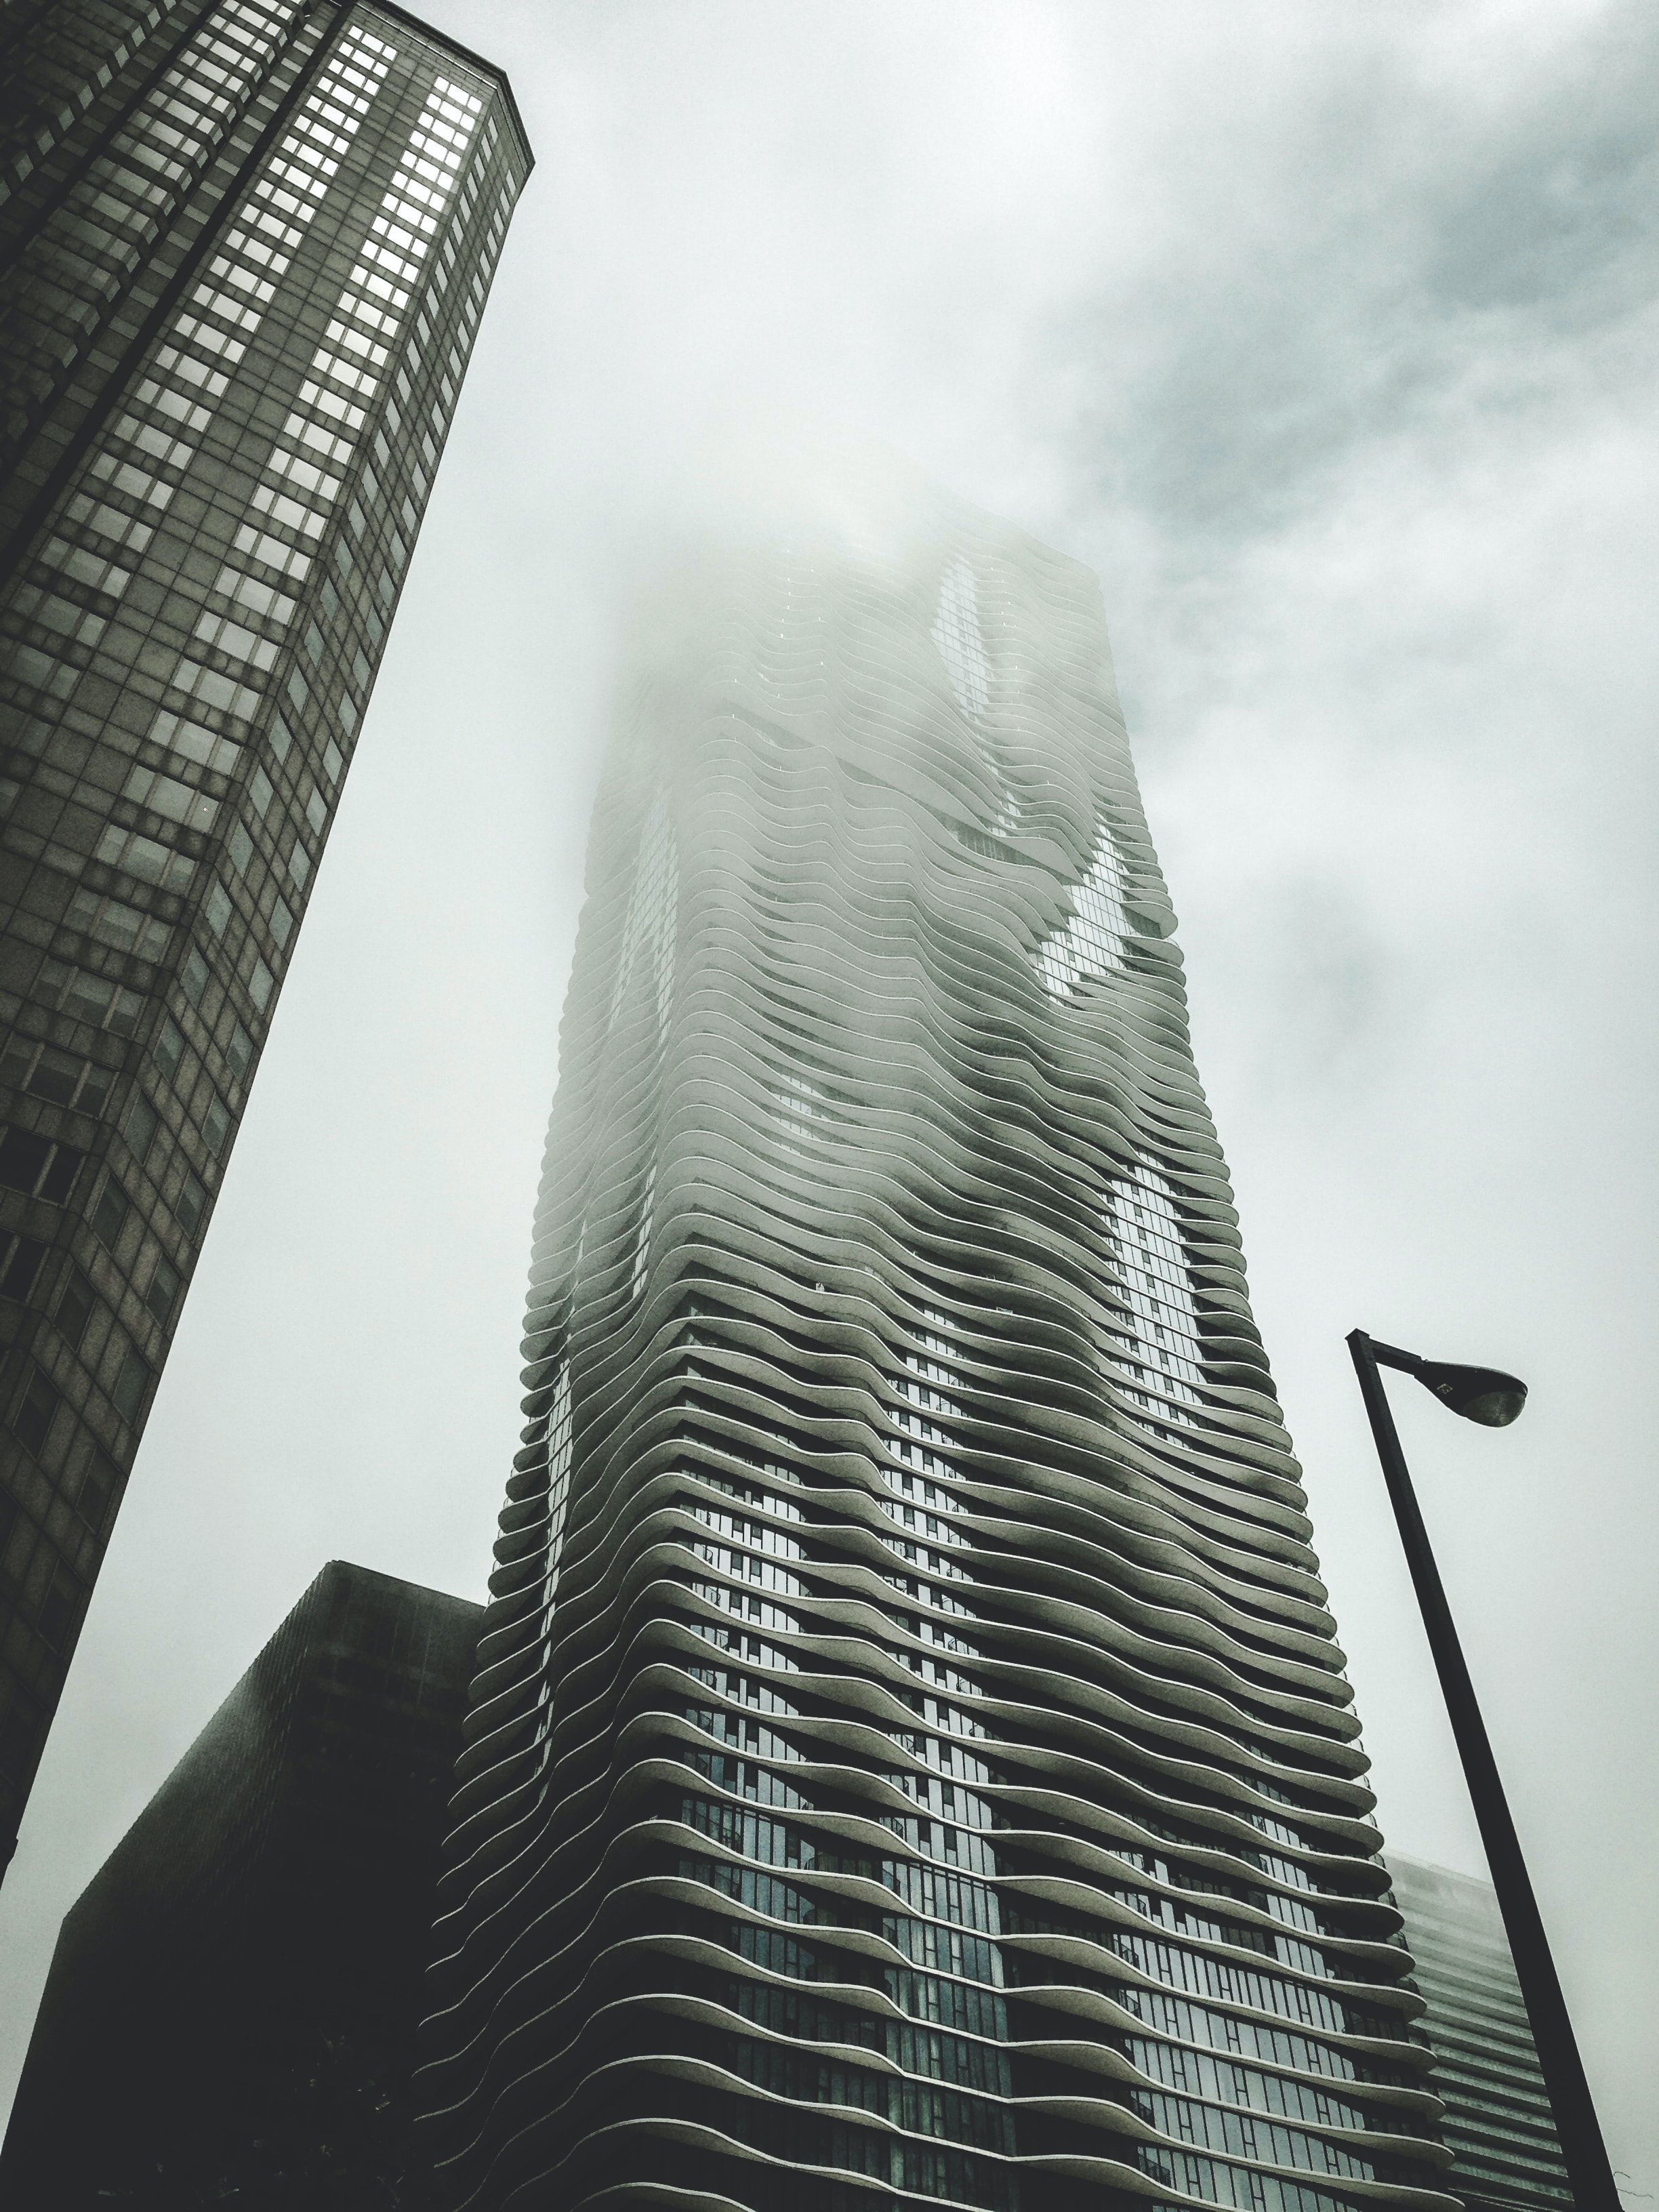 A tall skyscraper wreathed in mist